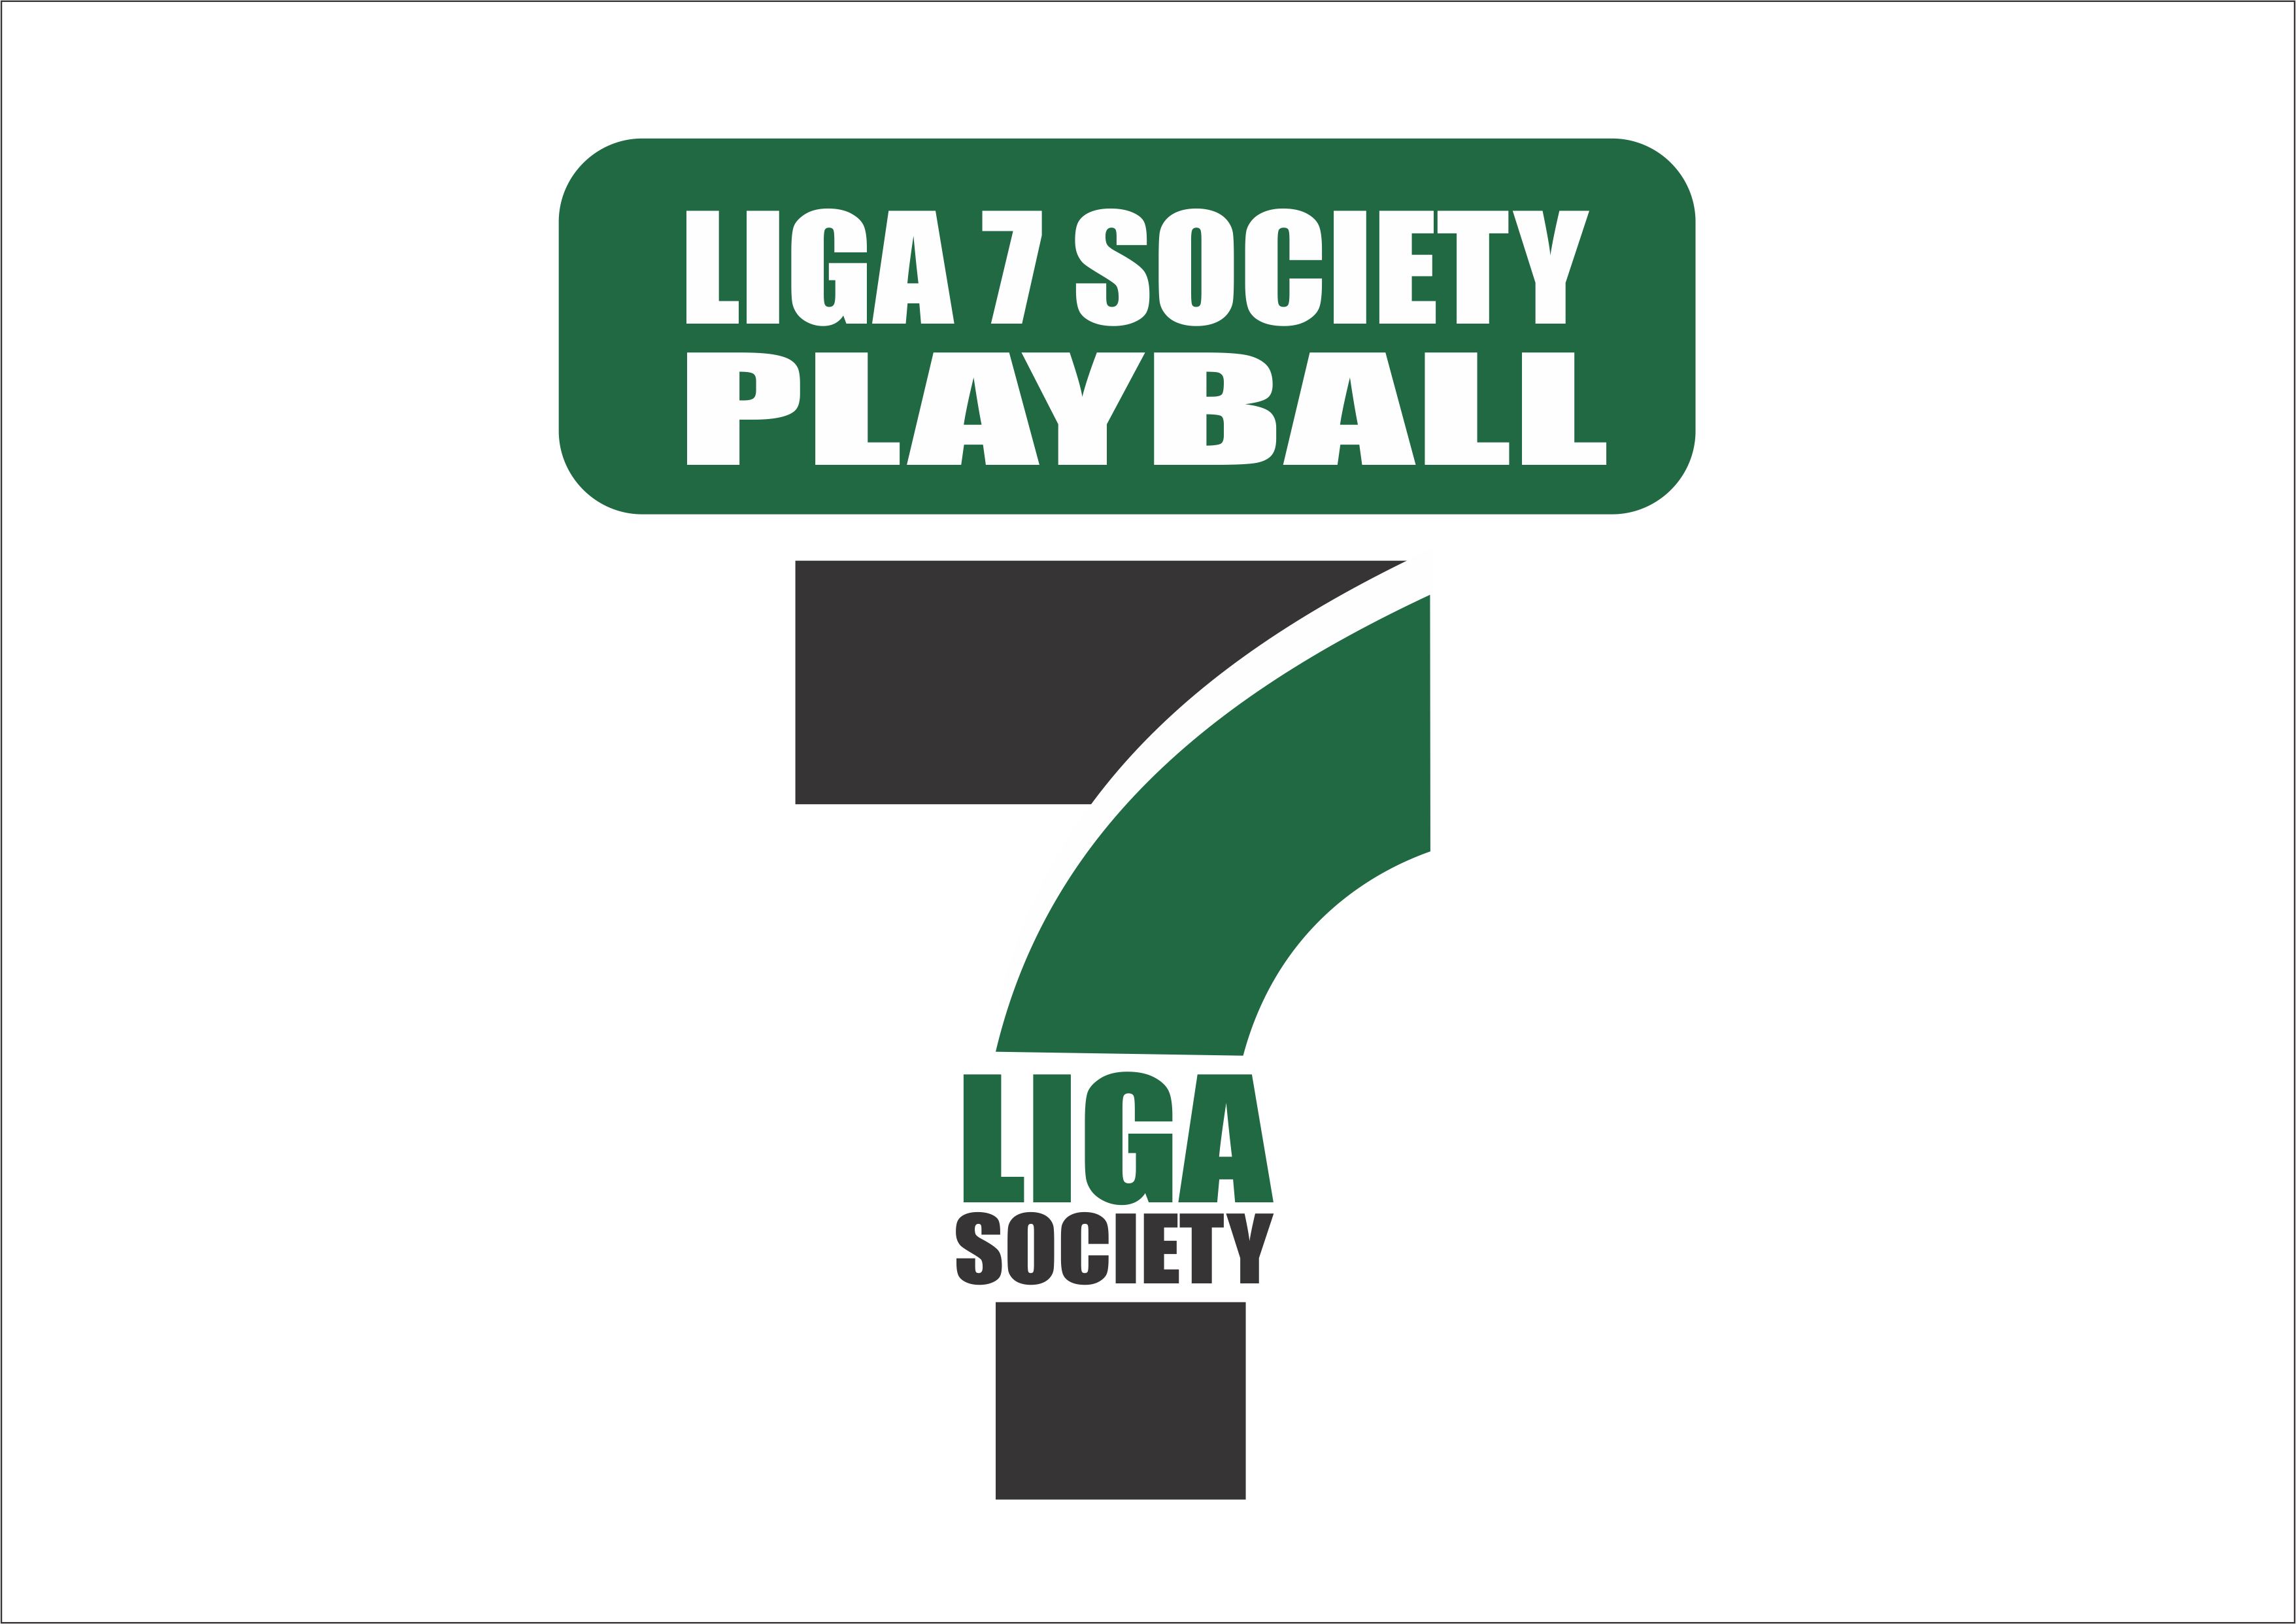 II Liga 7 Society Playball Séries A